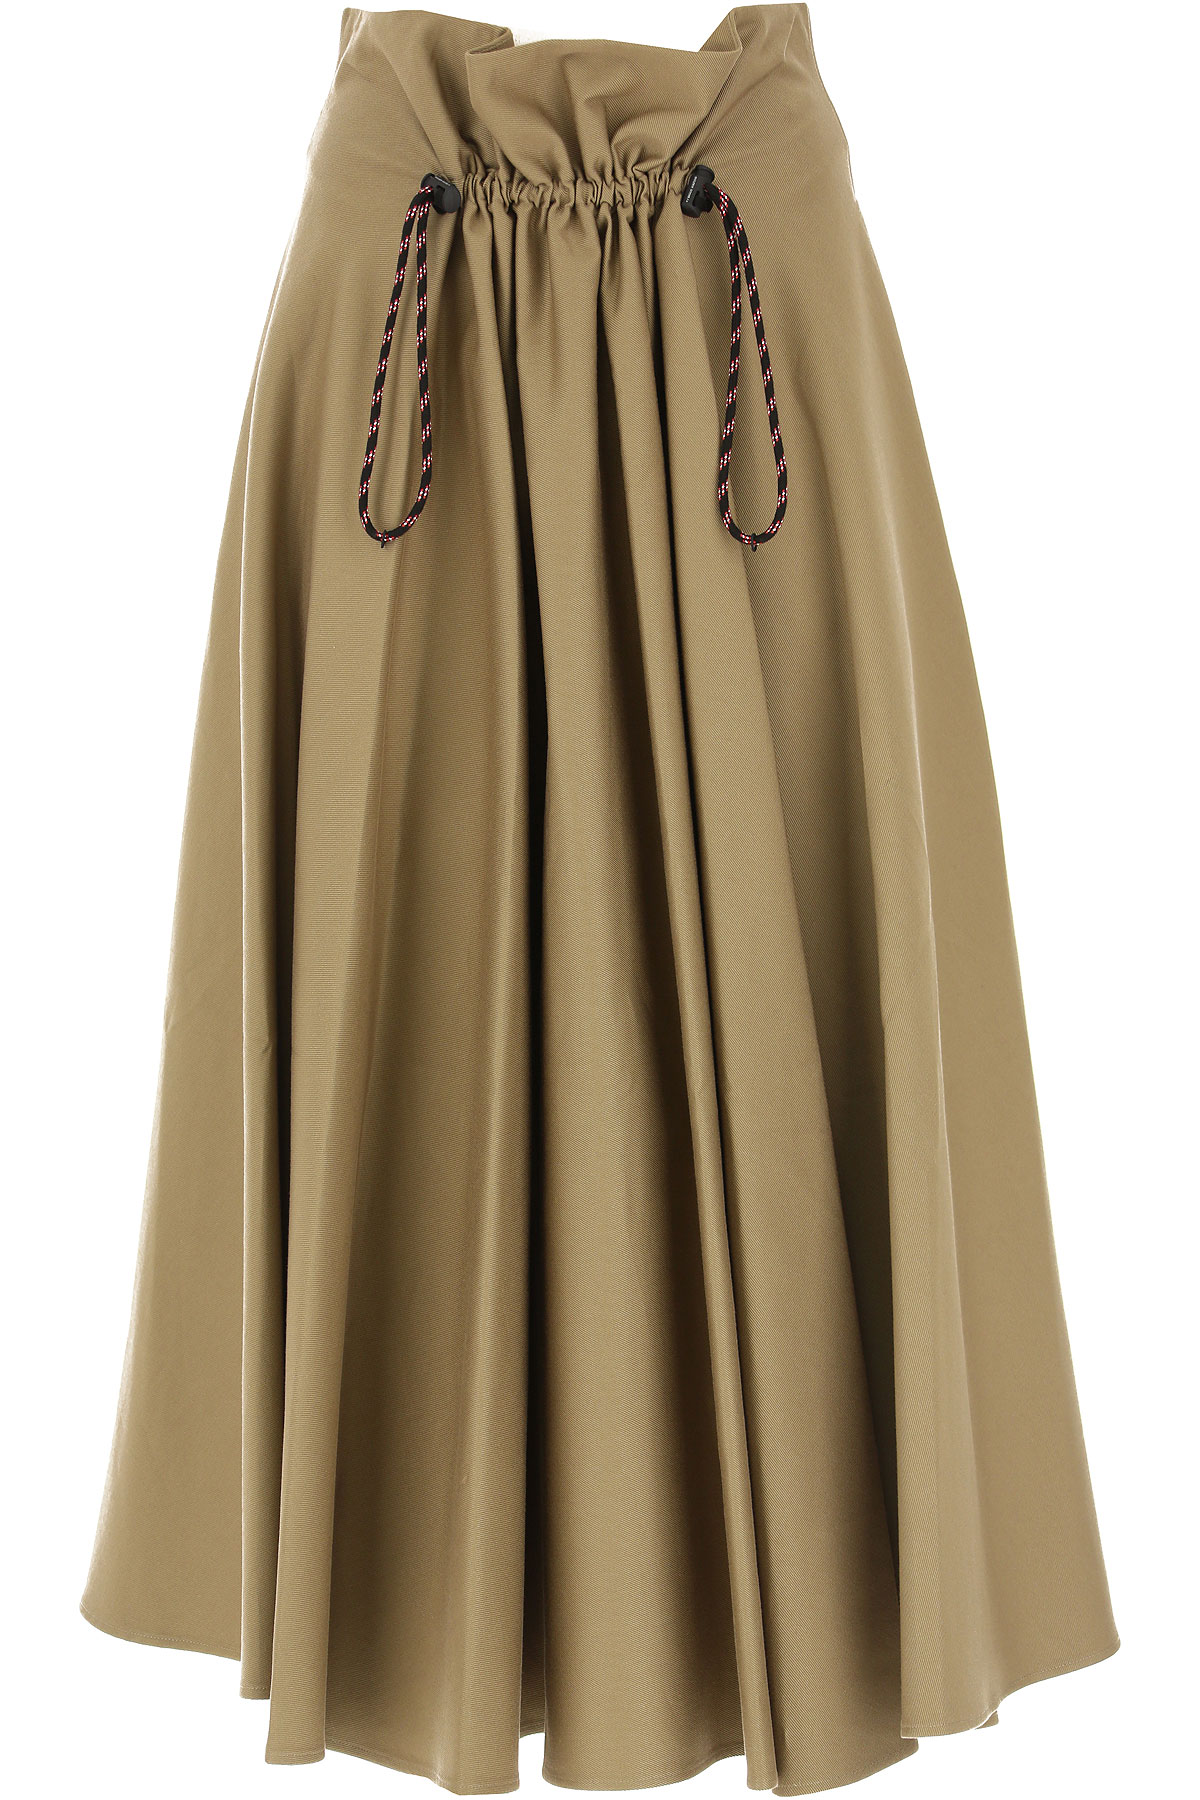 Golden Goose Skirt for Women On Sale, Taupe, Cotton, 2019, S (IT 40) M (IT 42 ) XS (IT 38)